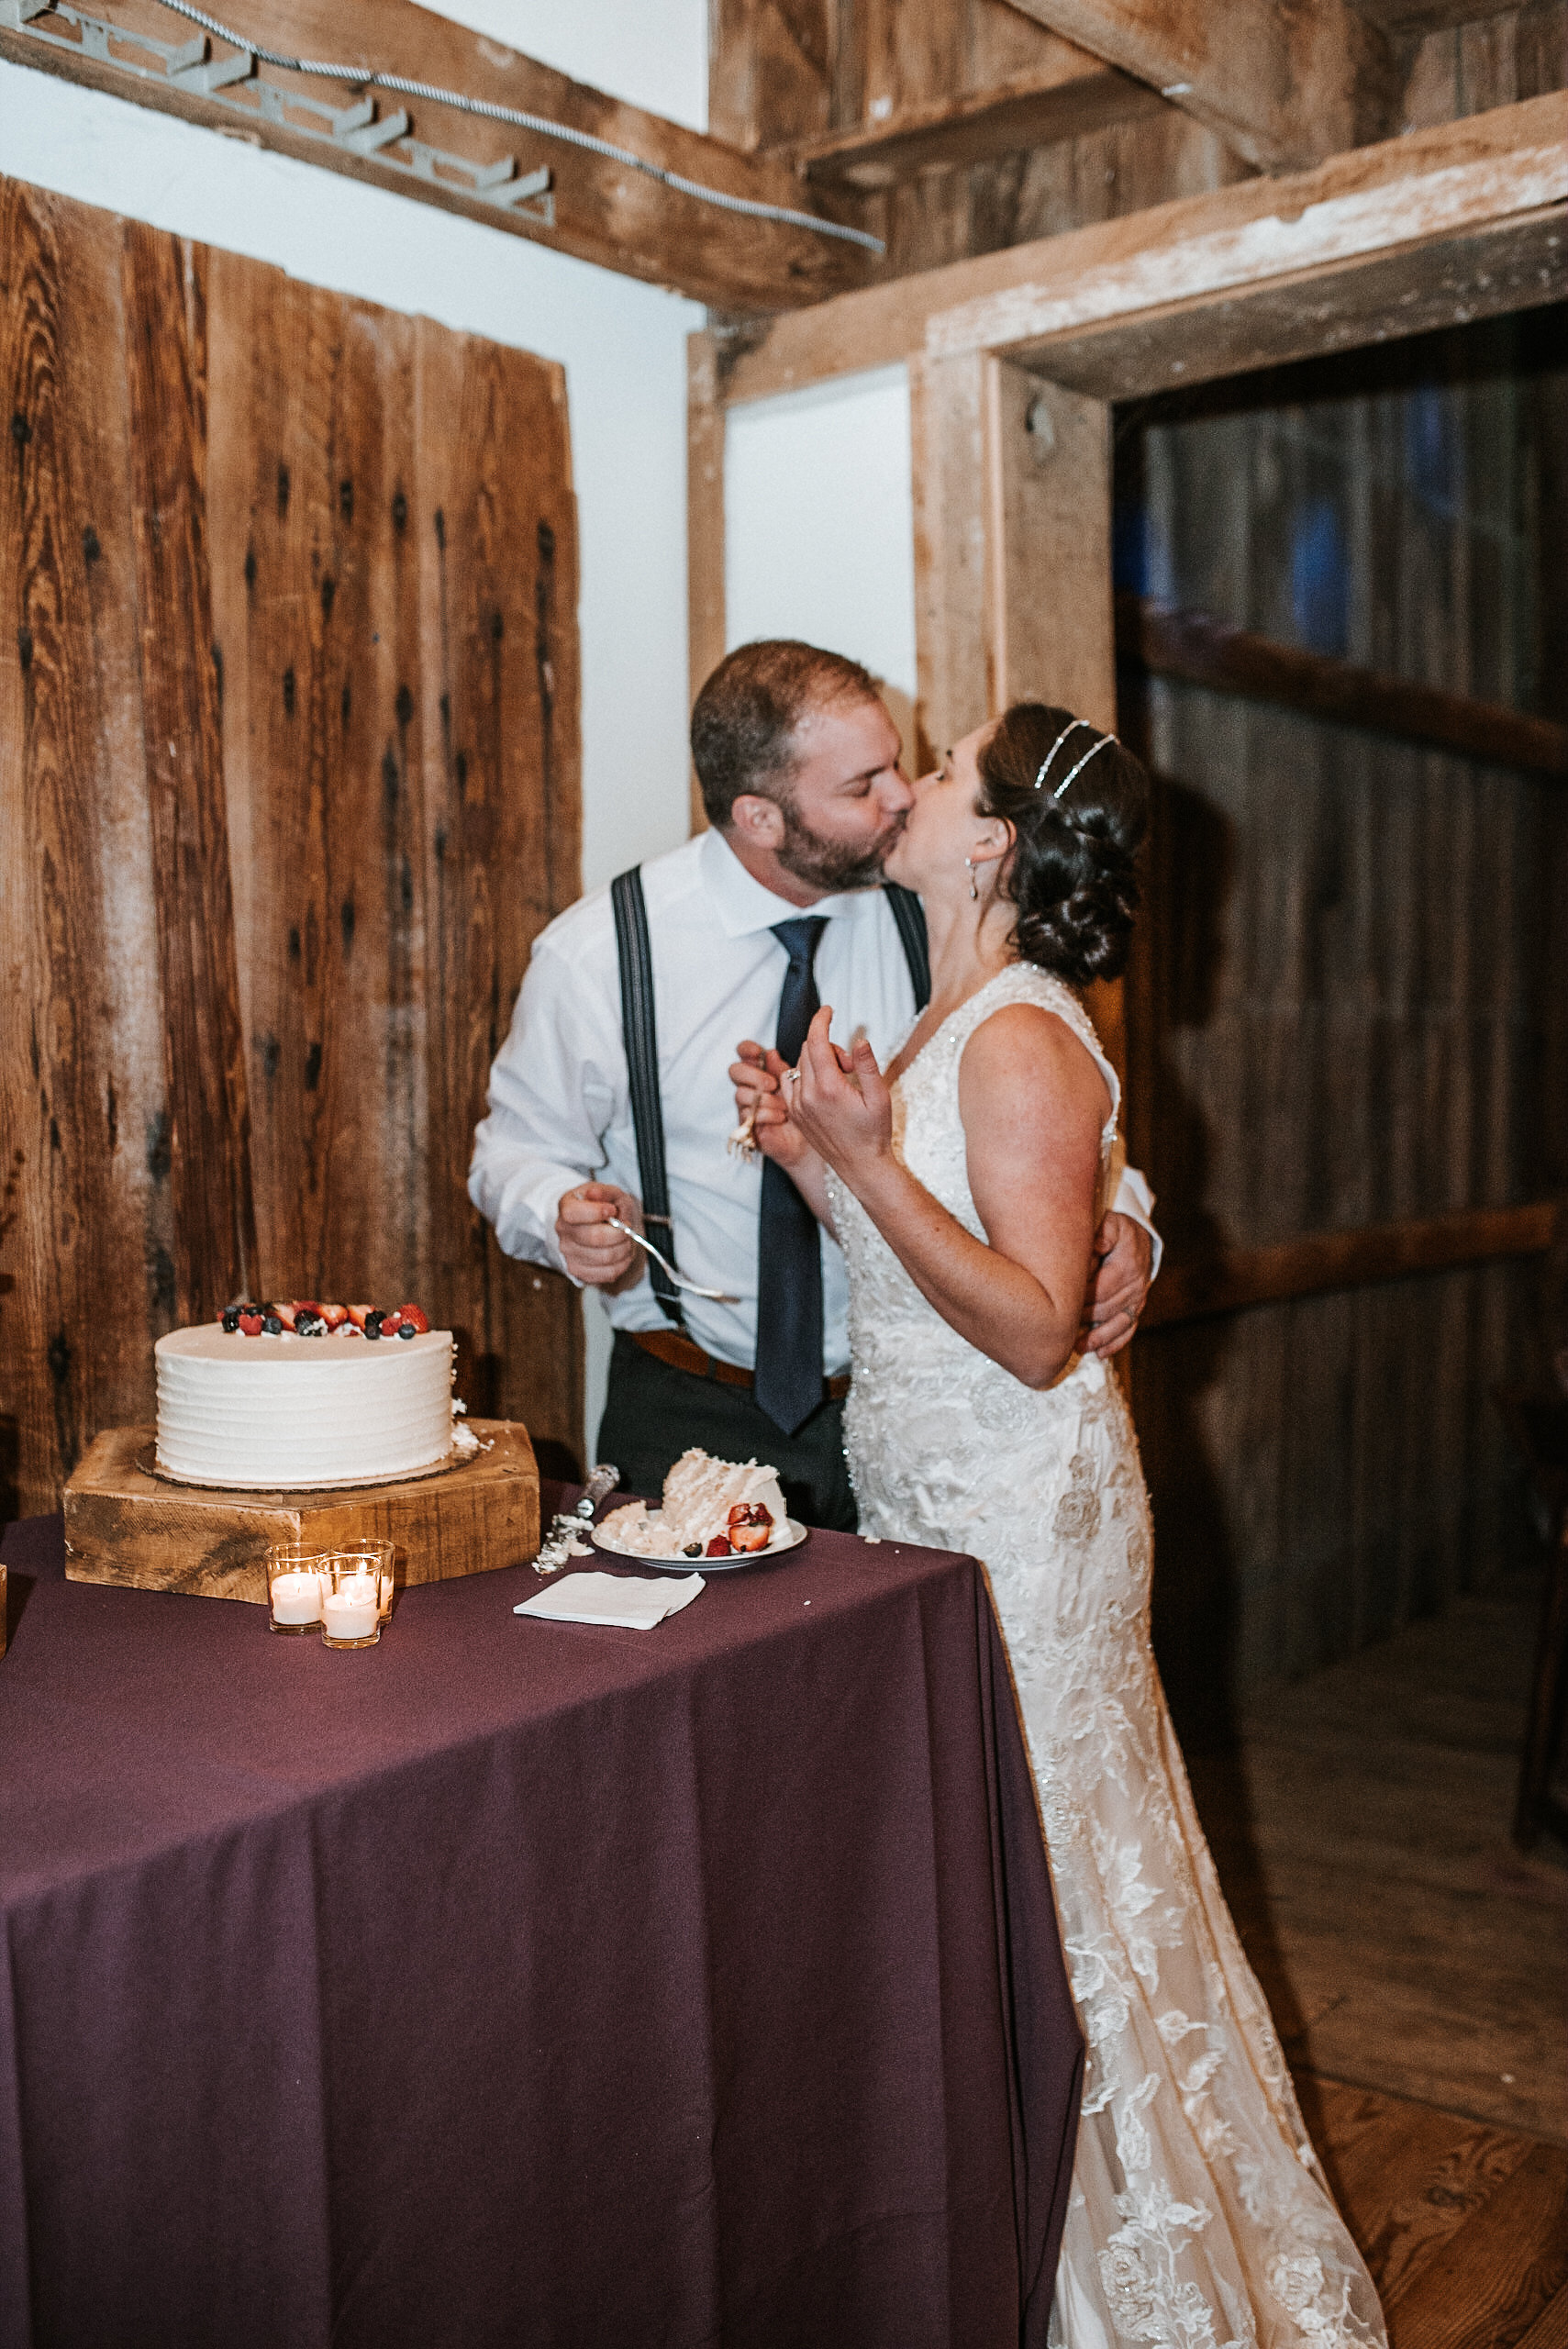 Bride and groom kissing after cake